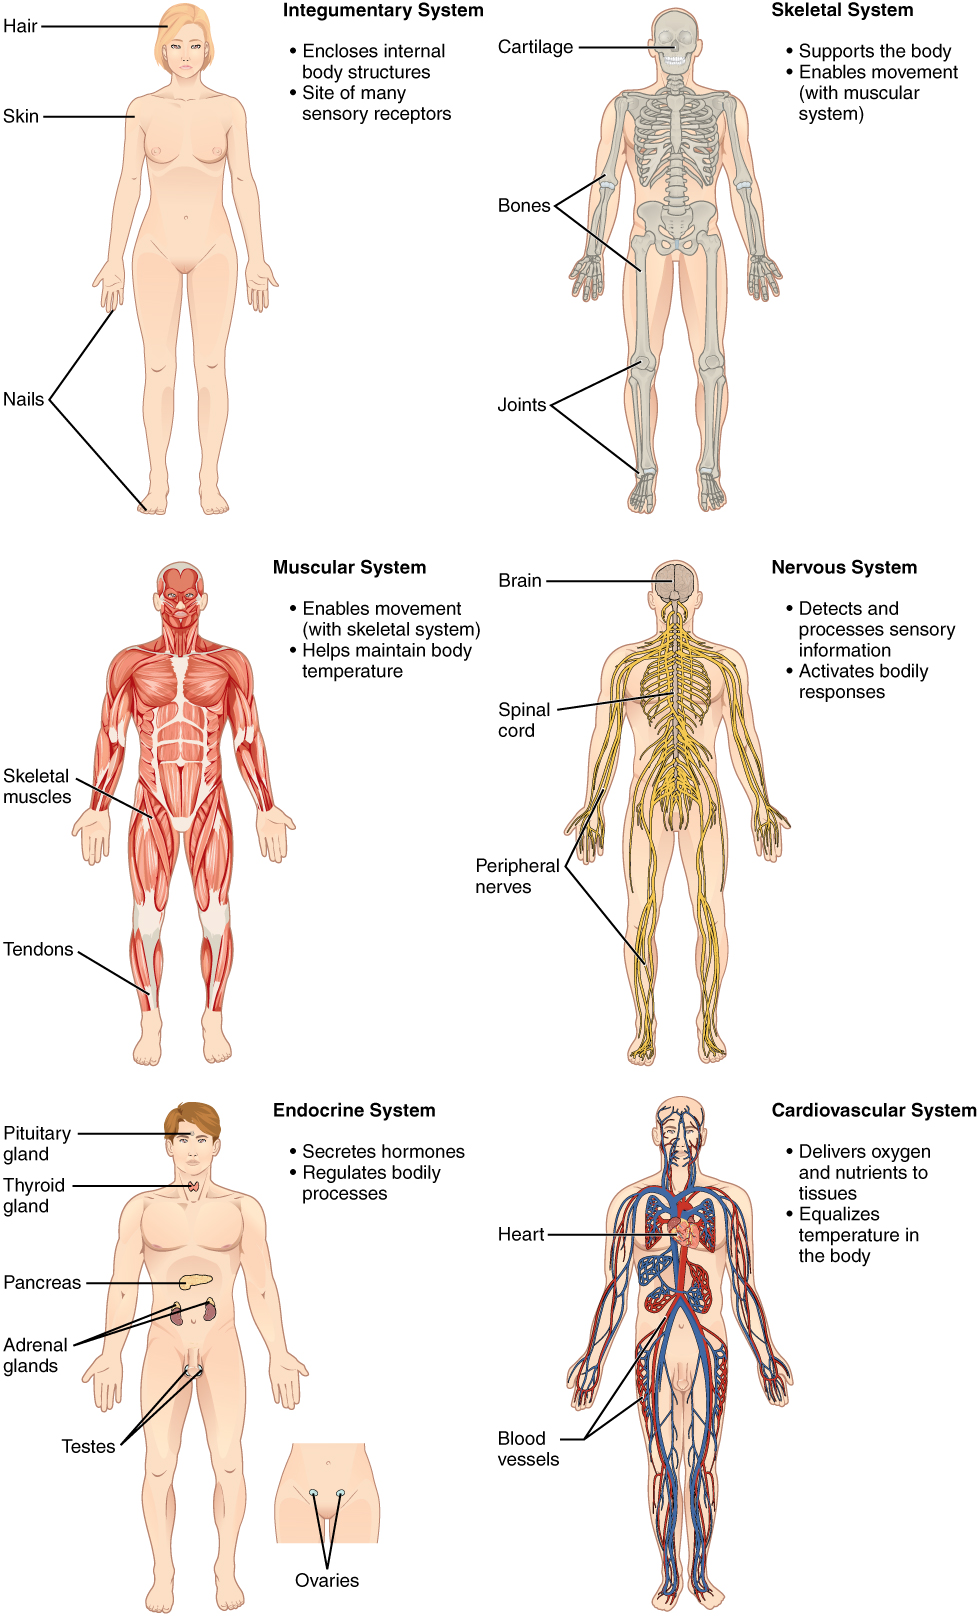 Structural Organization of the Human Body Anatomy and Physiology – Integumentary System Worksheets